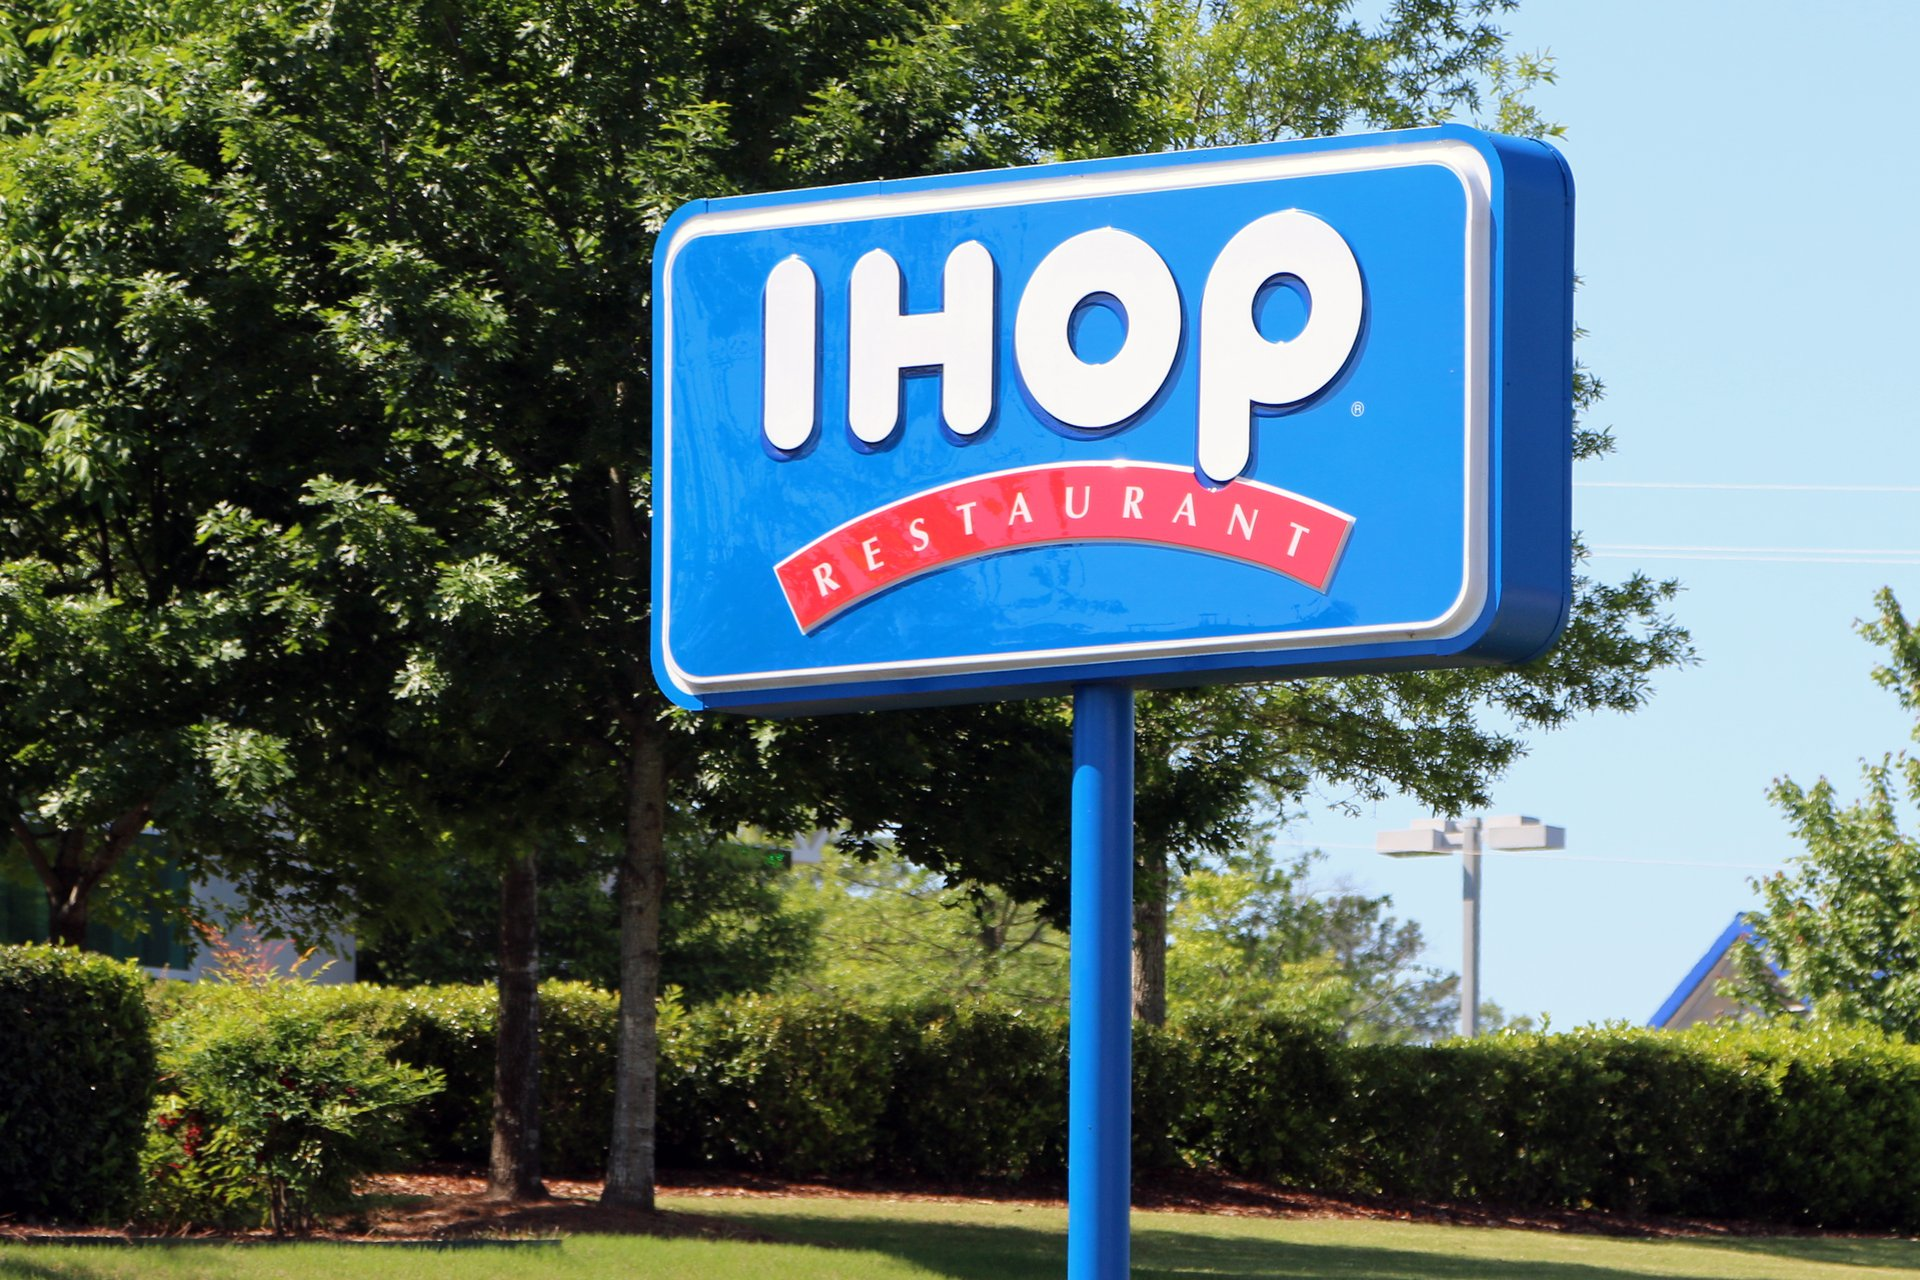 An IHOP restaurant sign in Nashville, Tennessee